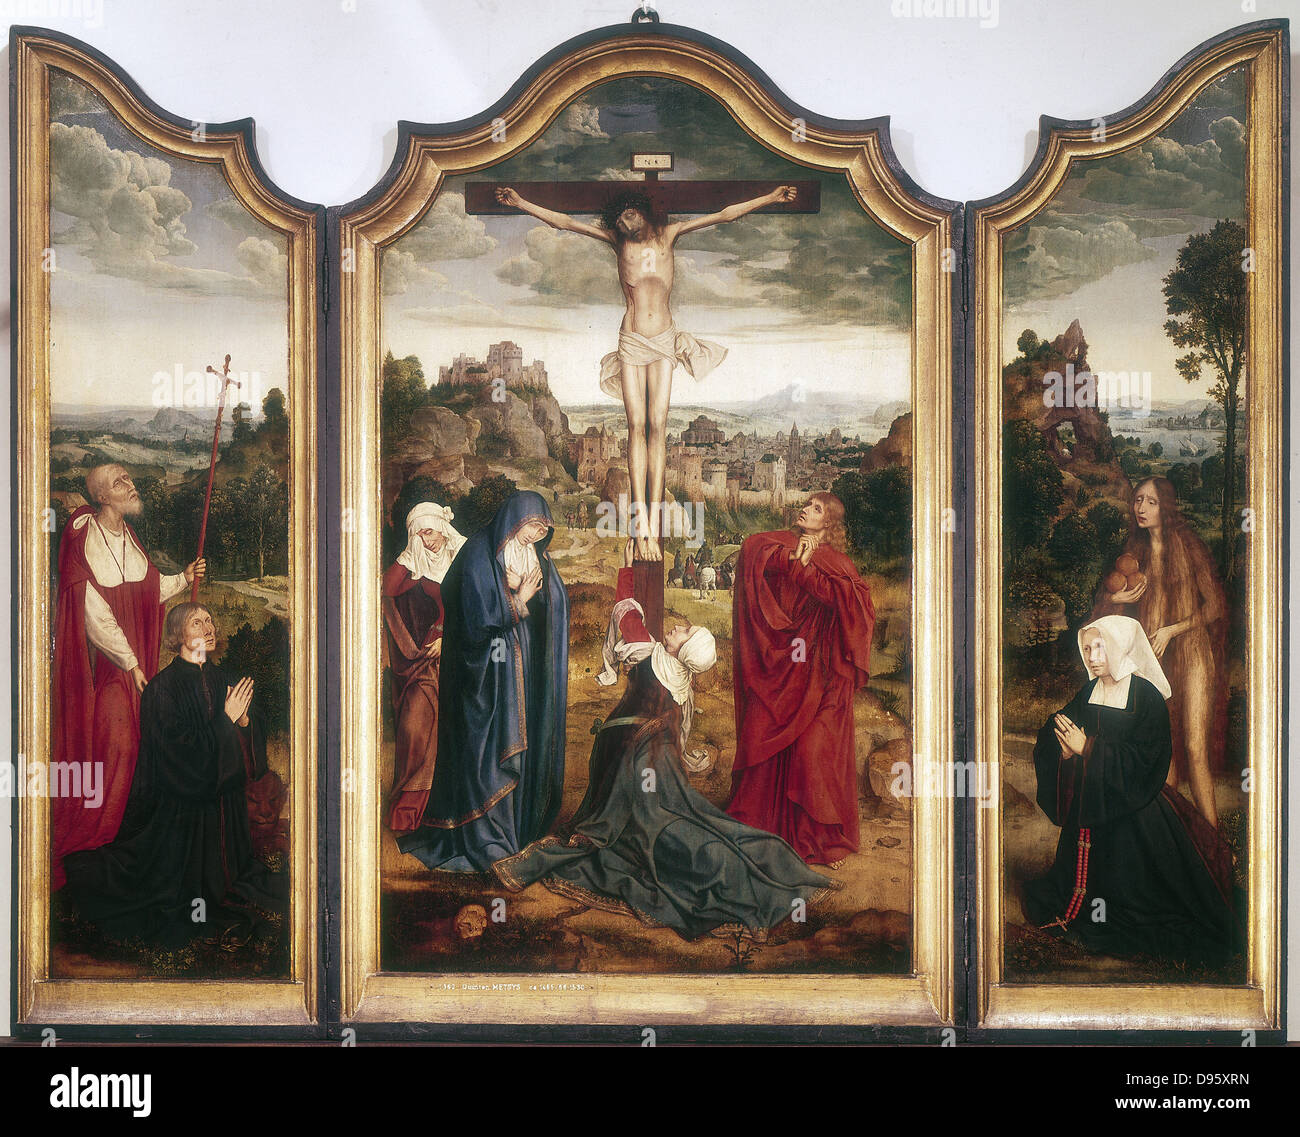 Triptych of the Crucifixion. Artist, Quentin Metsys (c1466-1531). Dutch. - Stock Image